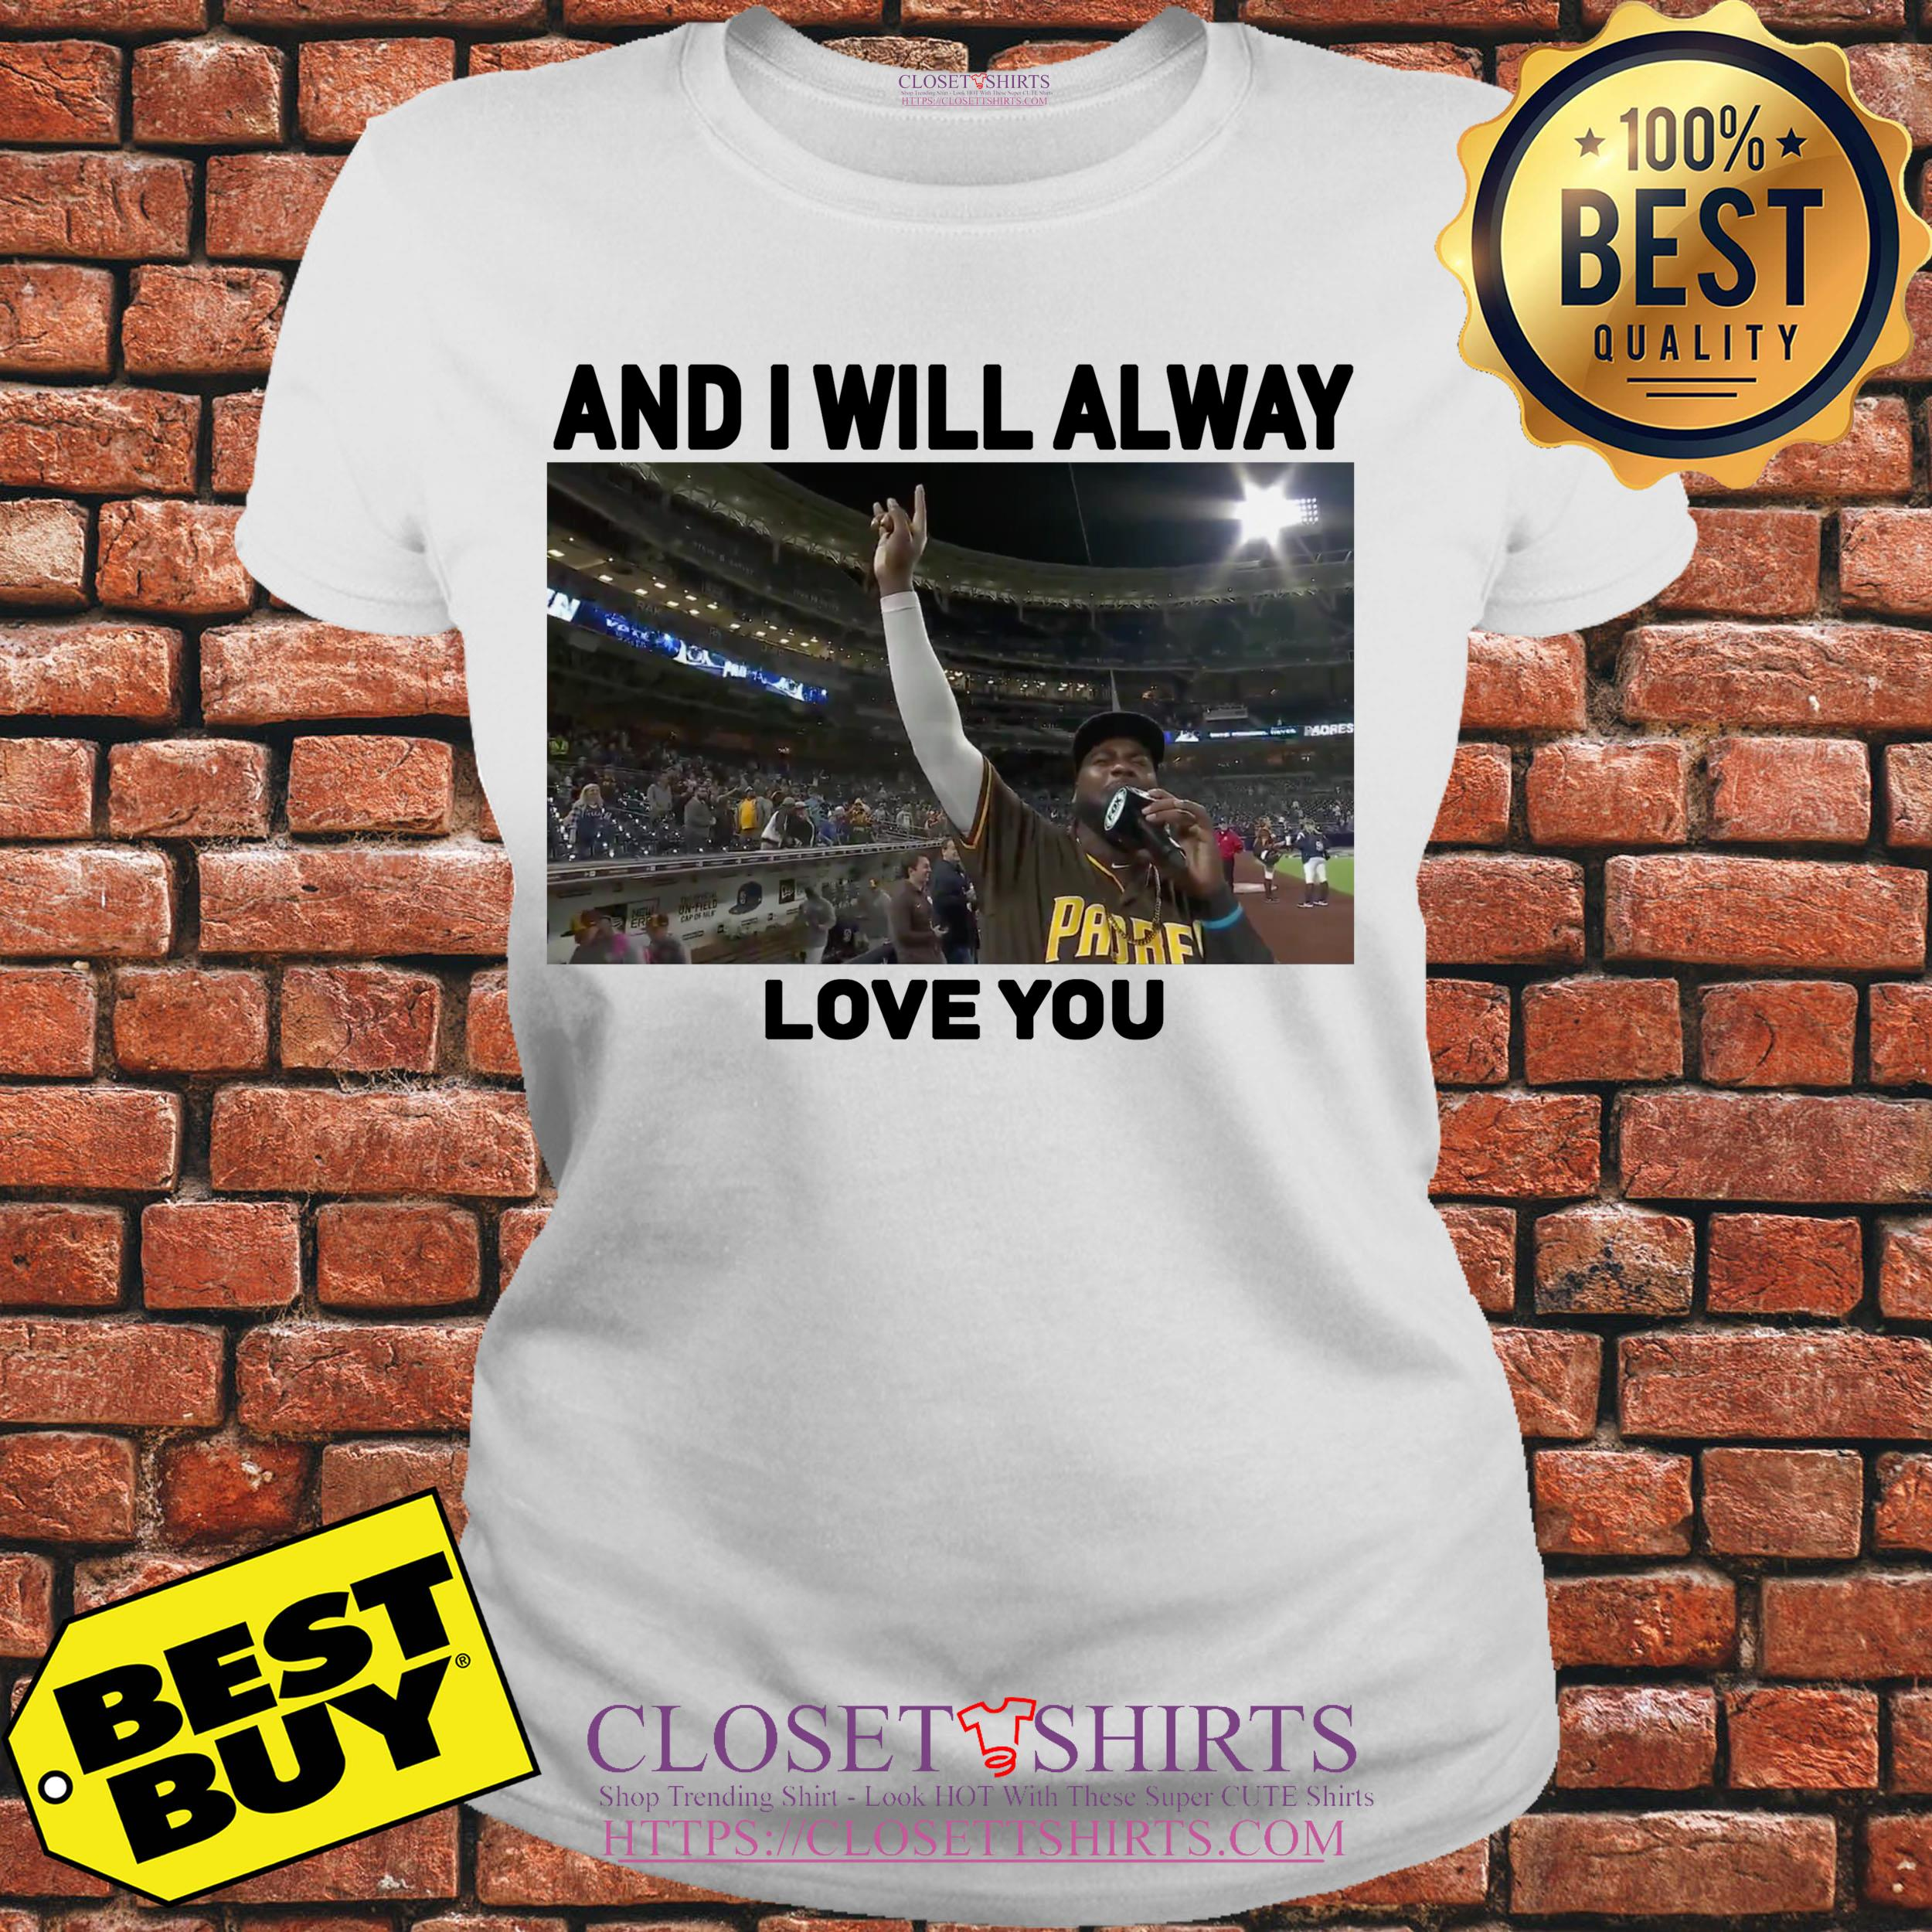 San Diego Padres And I Will Alway Love You ladies tee